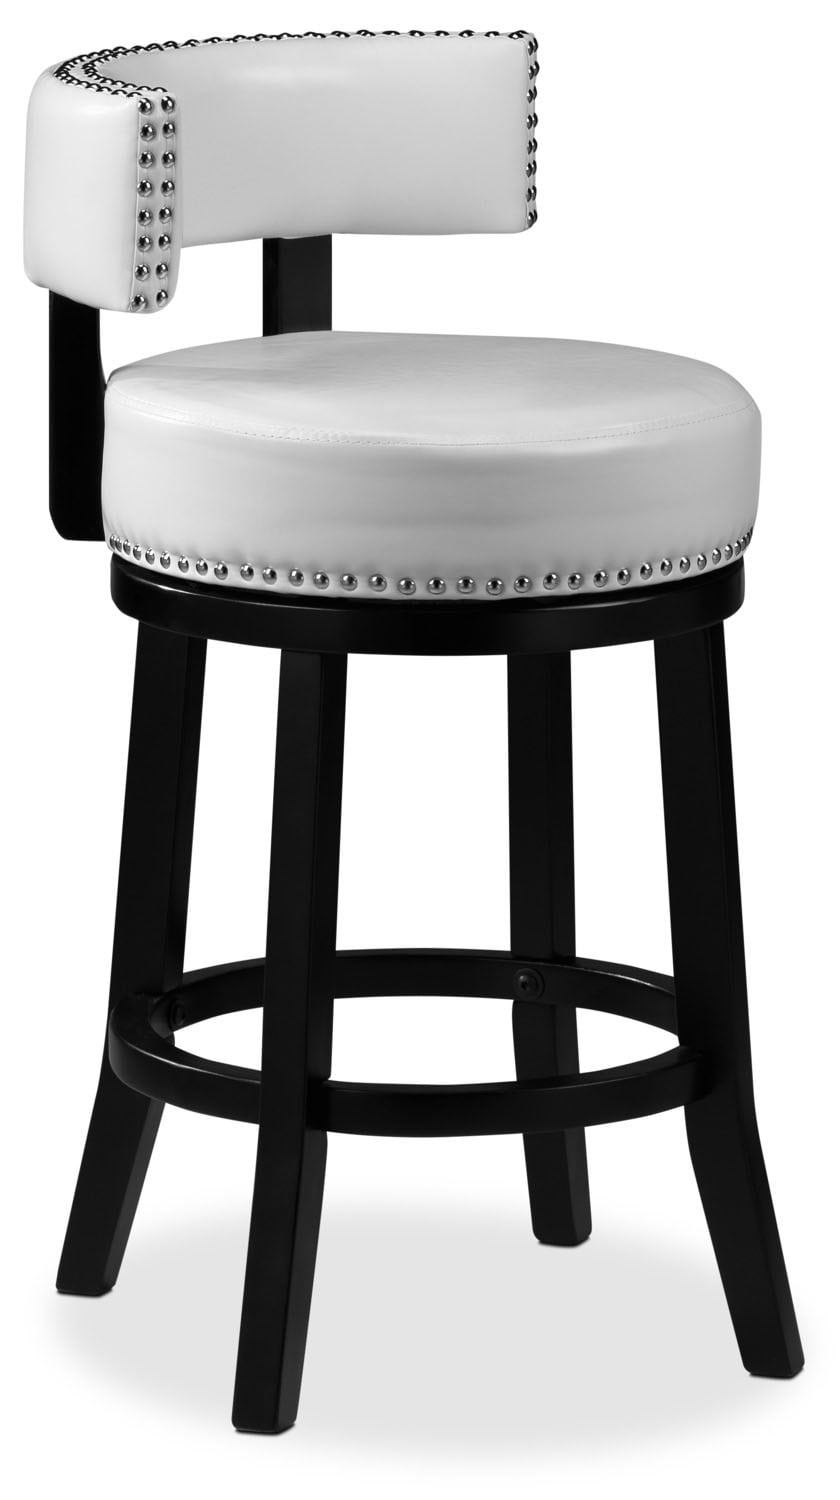 Houston 24quot Barstool White Leons : 503307 from www.leons.ca size 840 x 1500 jpeg 99kB